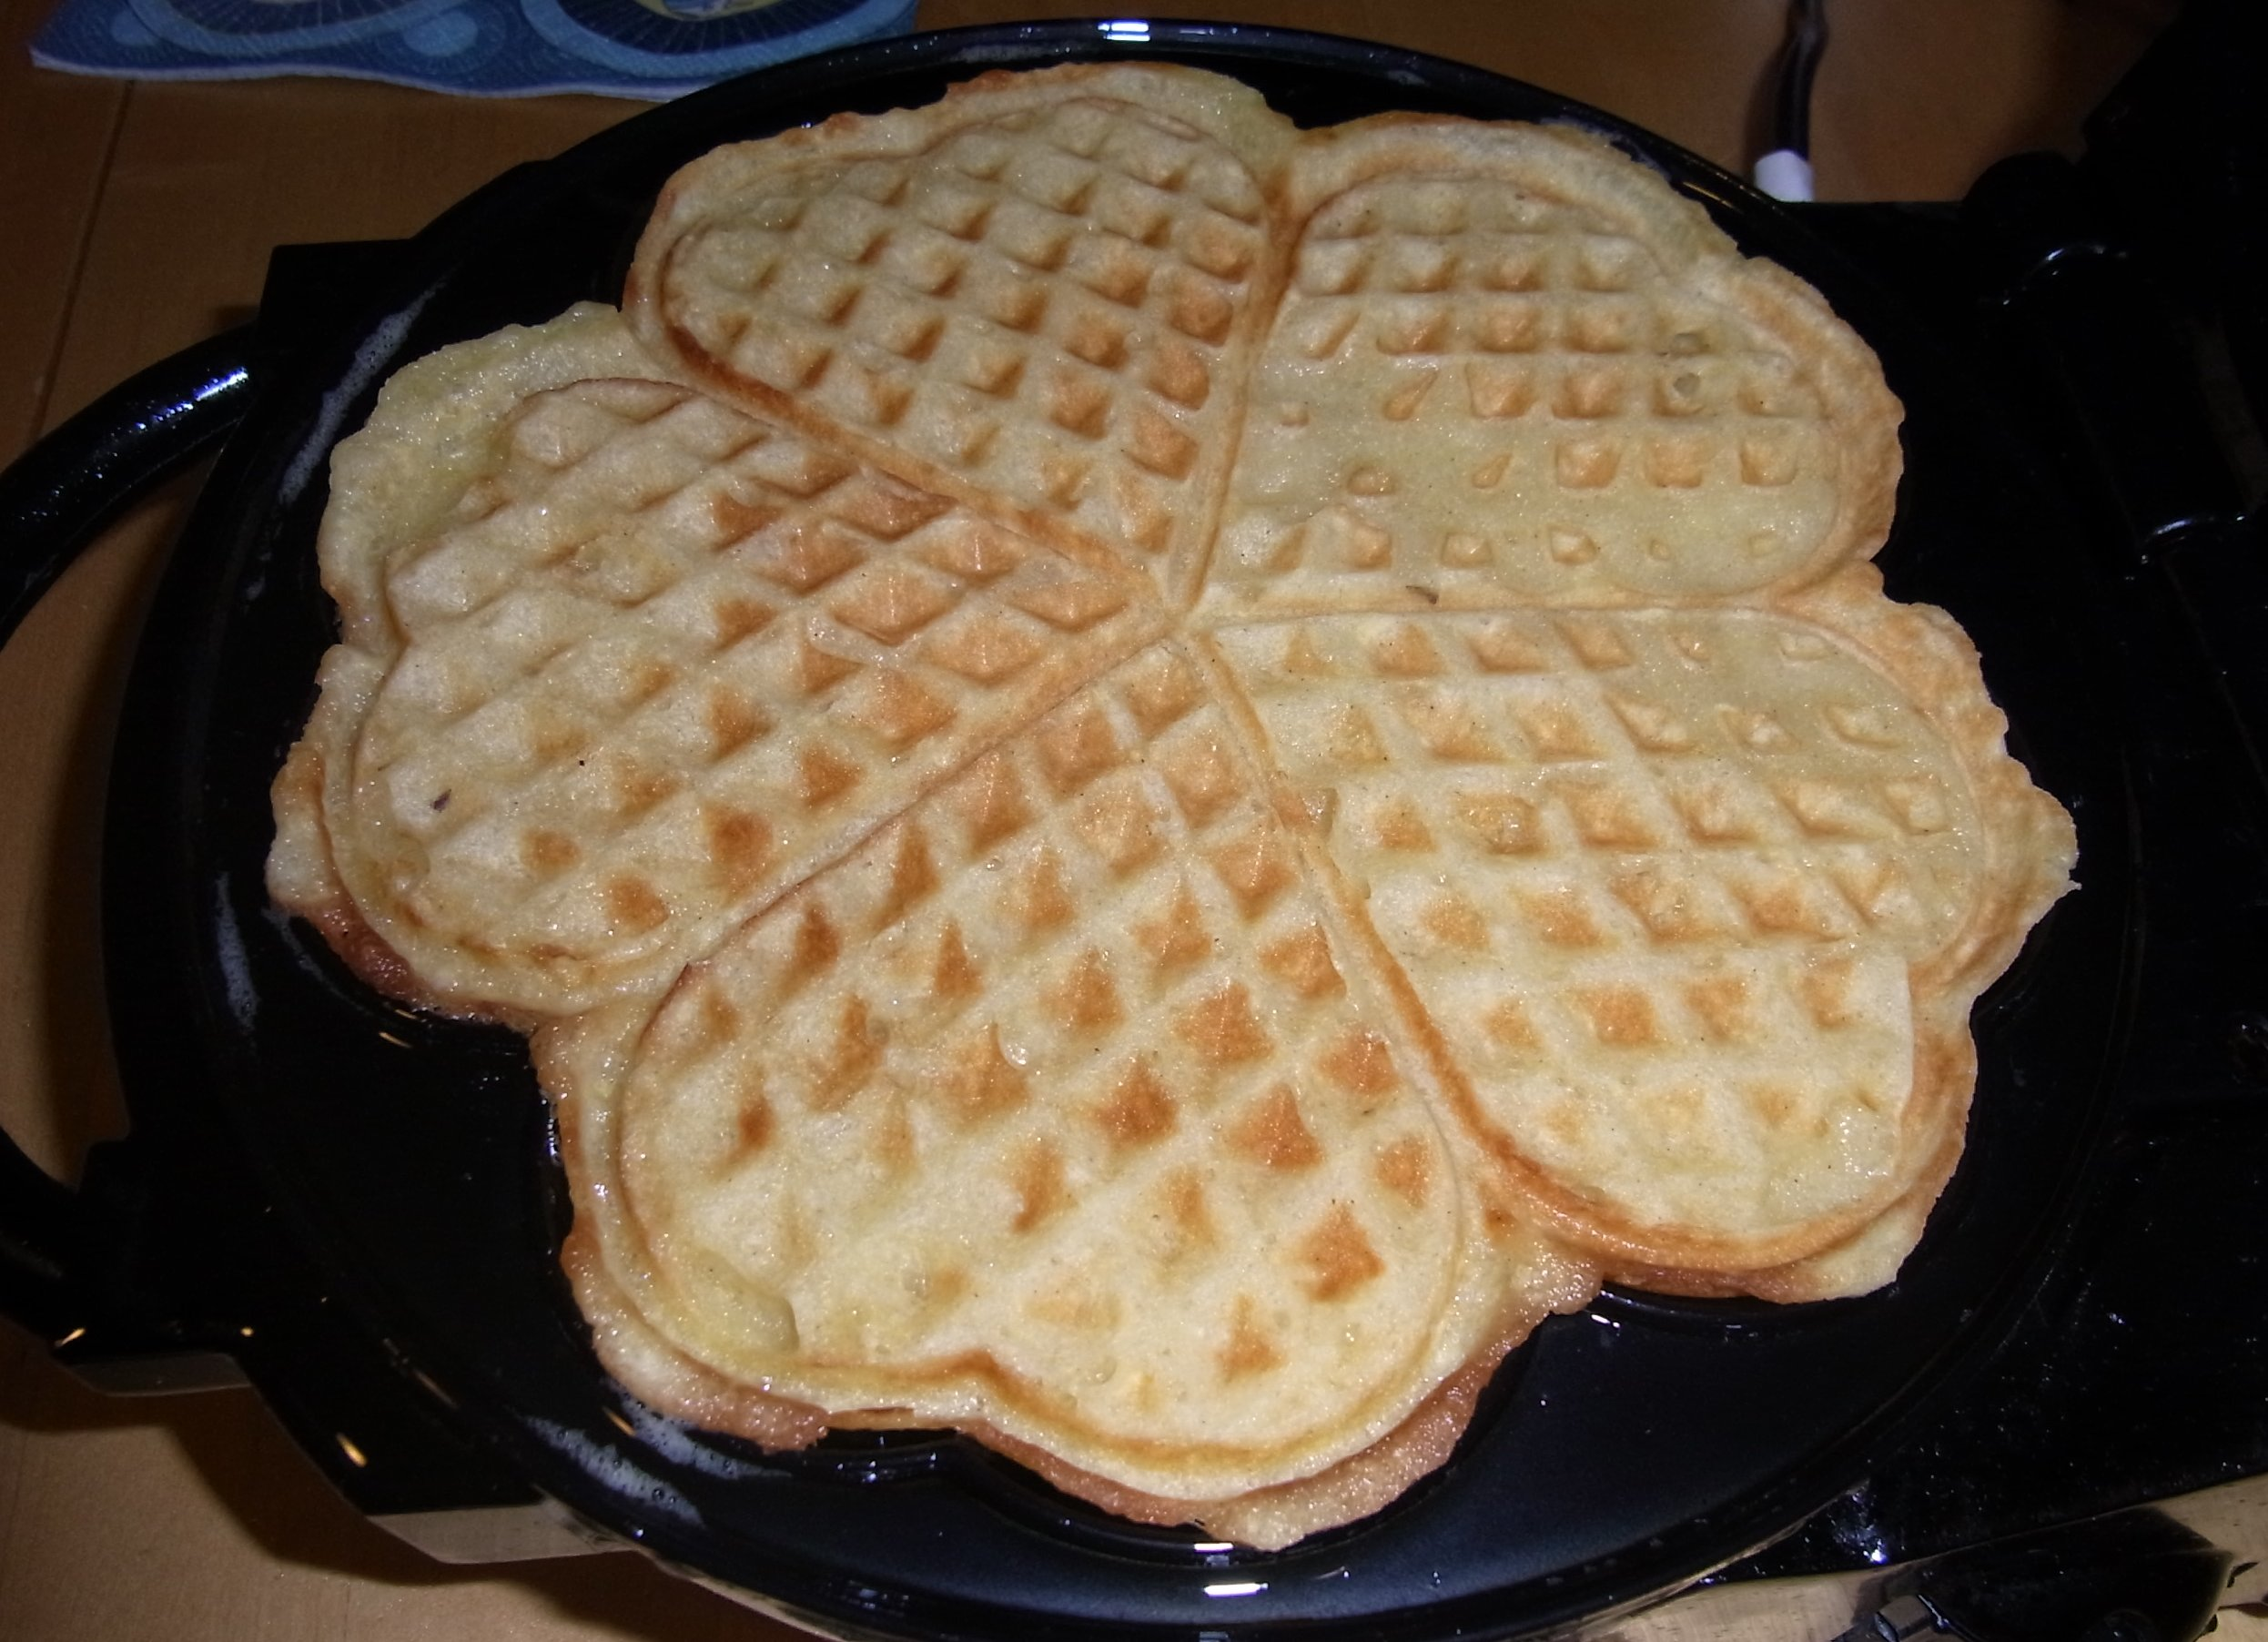 Aapfelwaffeln